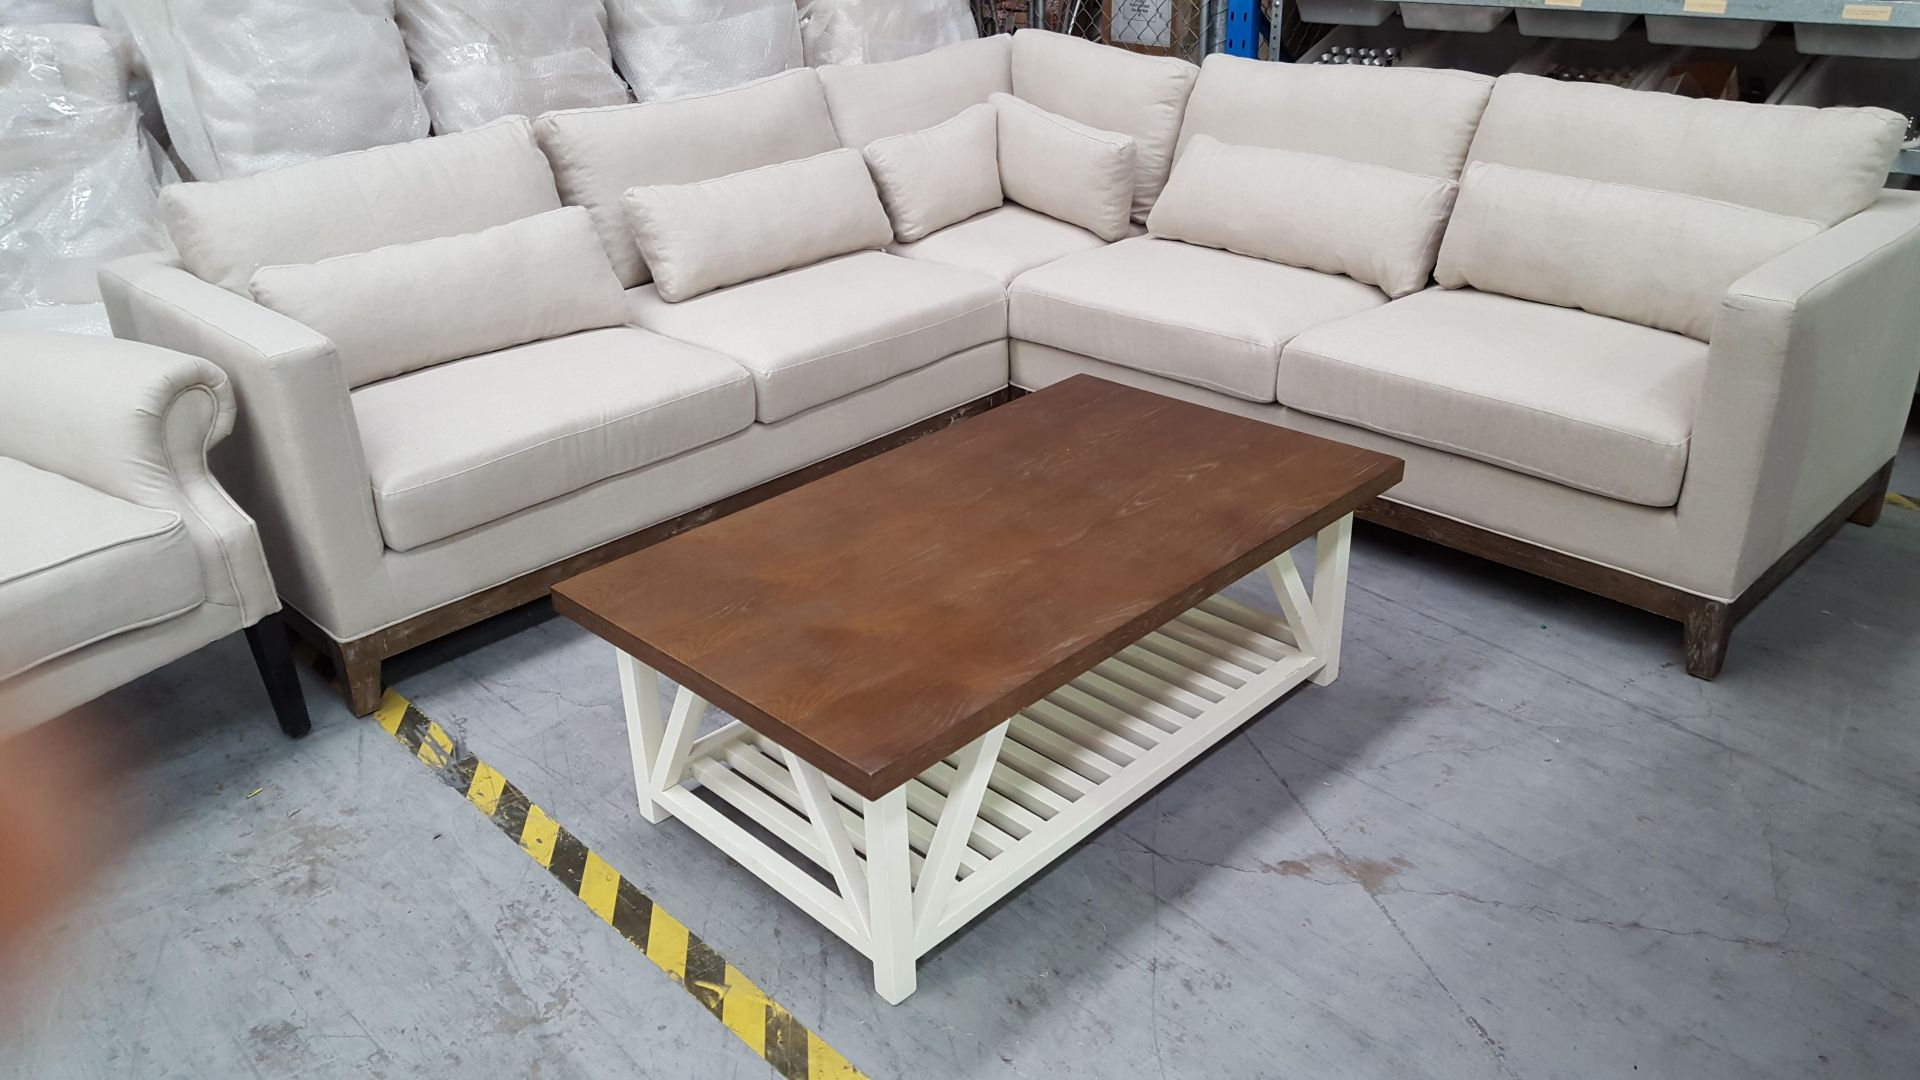 Furniture Importing Business For Sale